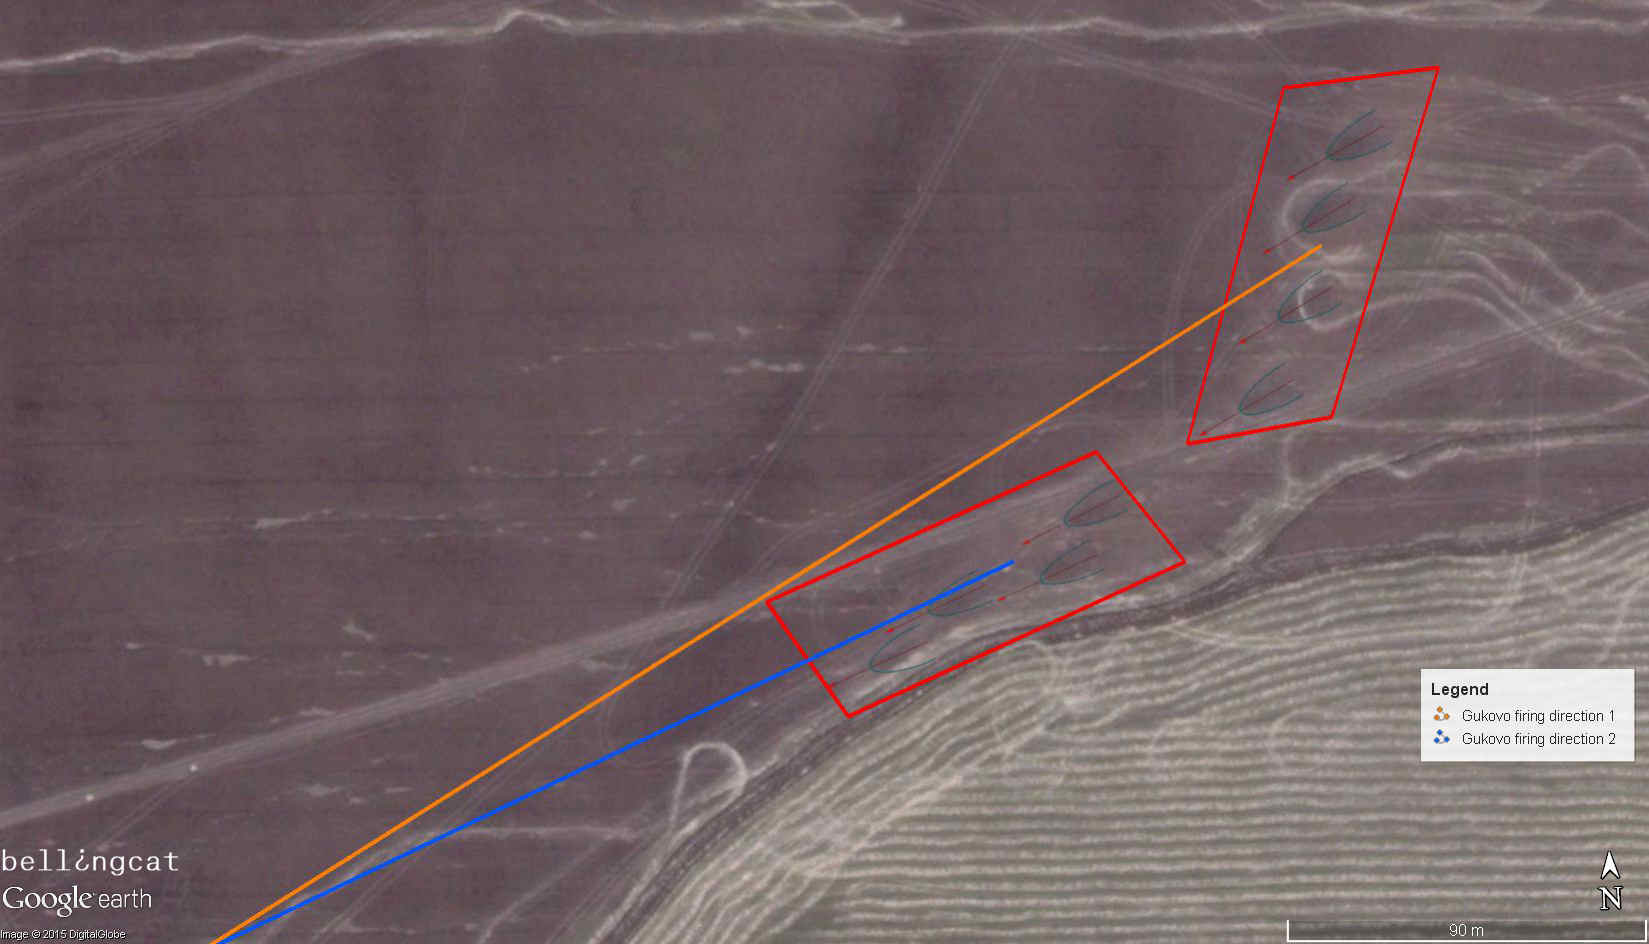 Trajectories analyzed from the direction of the burn marks